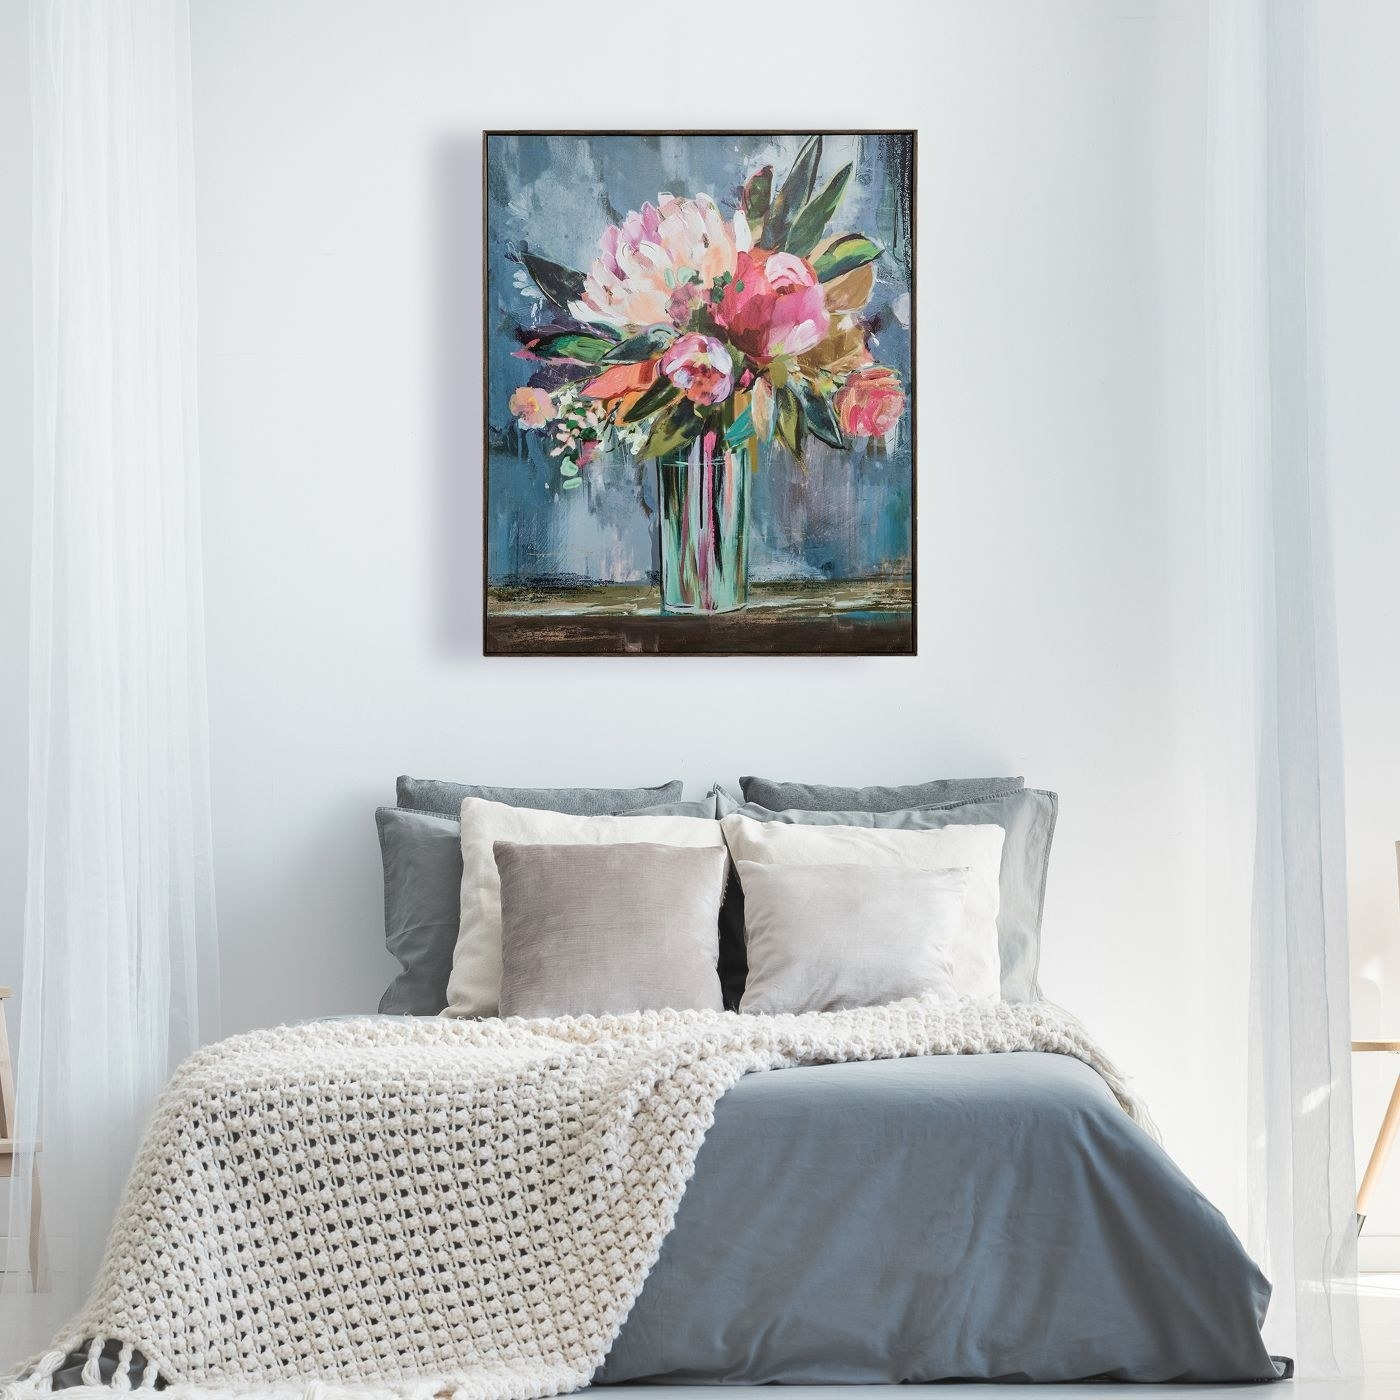 floral still life framed canvas hung over a bed